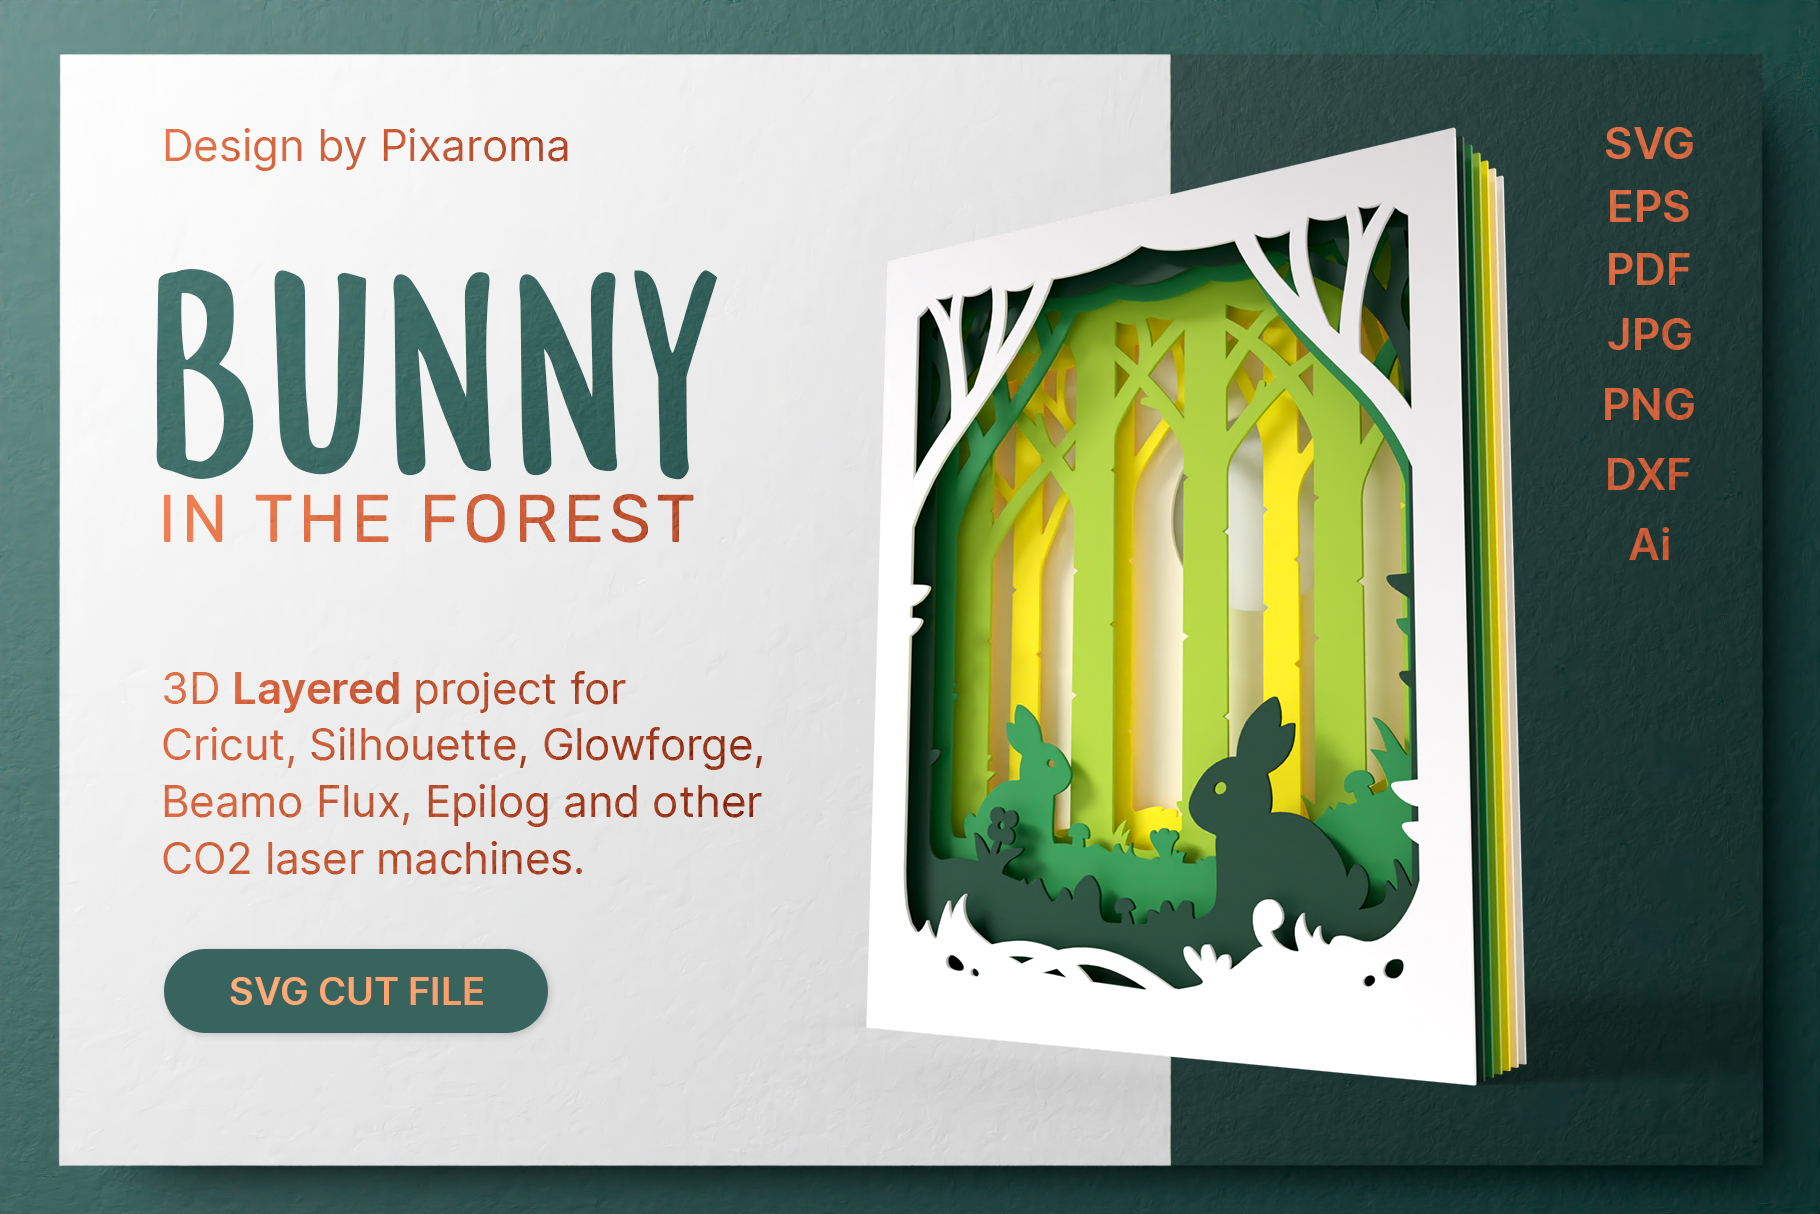 Bunny in the Forest 3D Layered SVG... SVG File